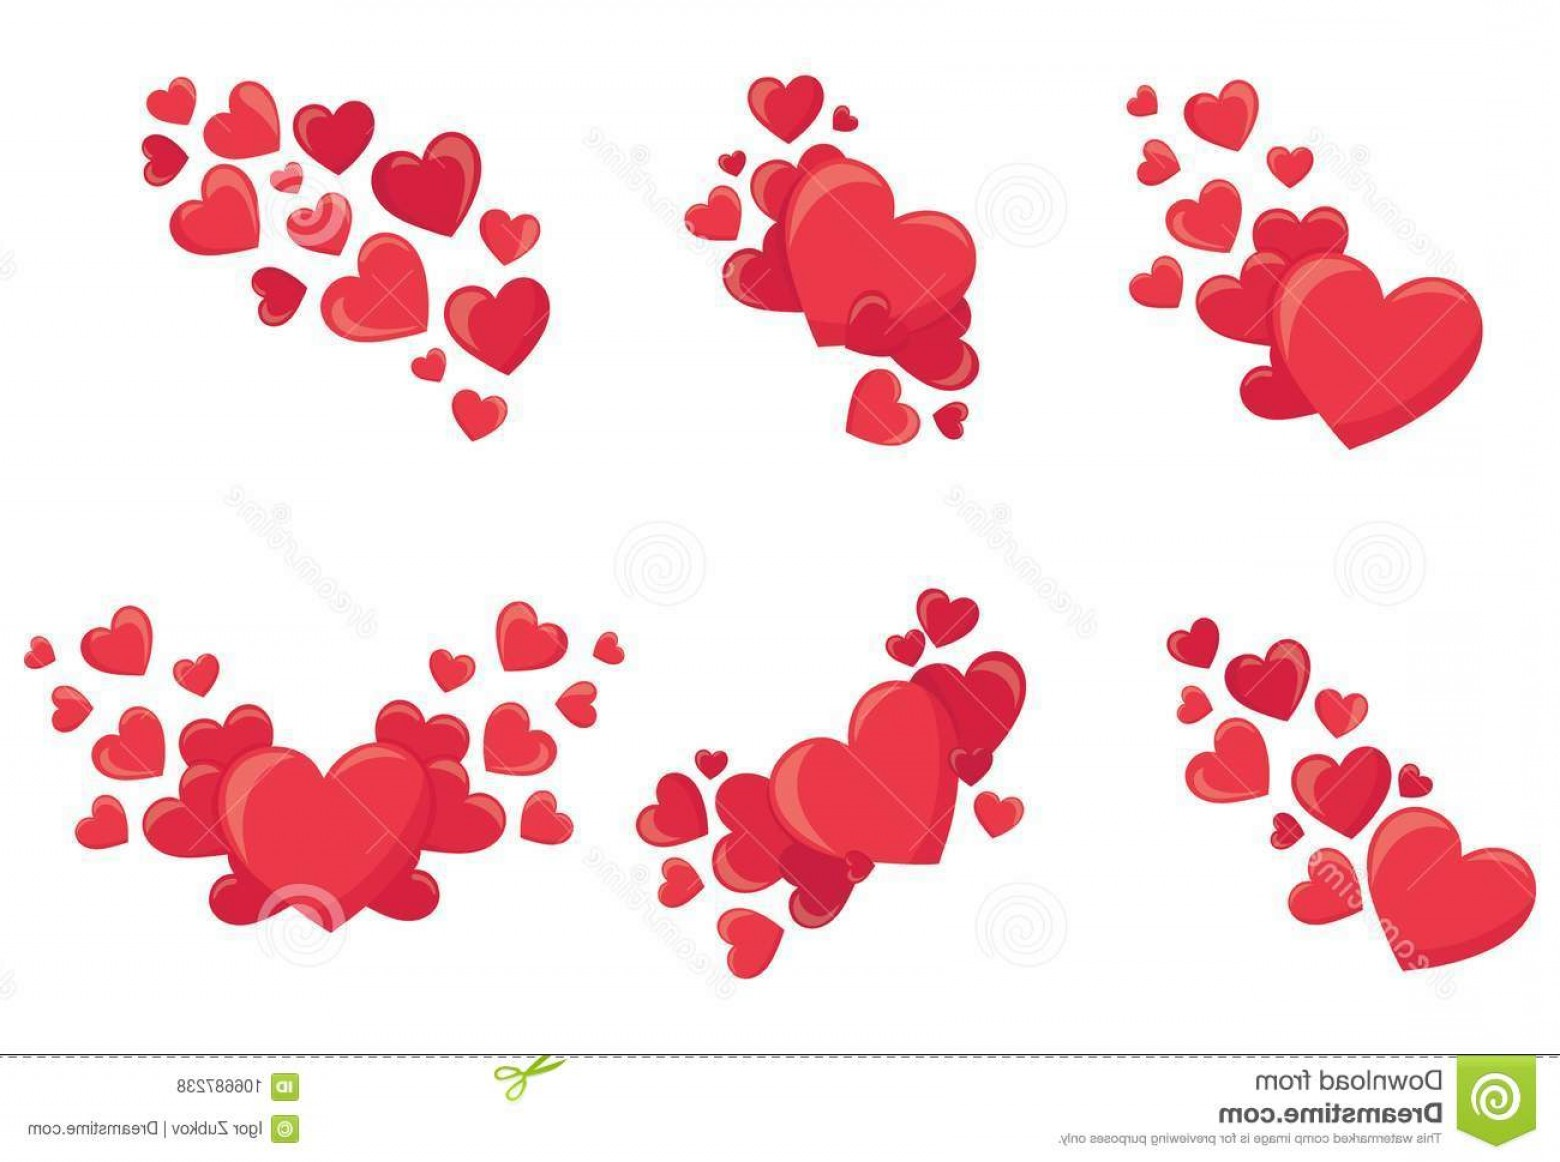 Cool Vector Hearts Pattern Symbol Pattern: Set Red Hearts Collection Stylized Patterns Symbol Love Vector Illustration Valentines Day Image